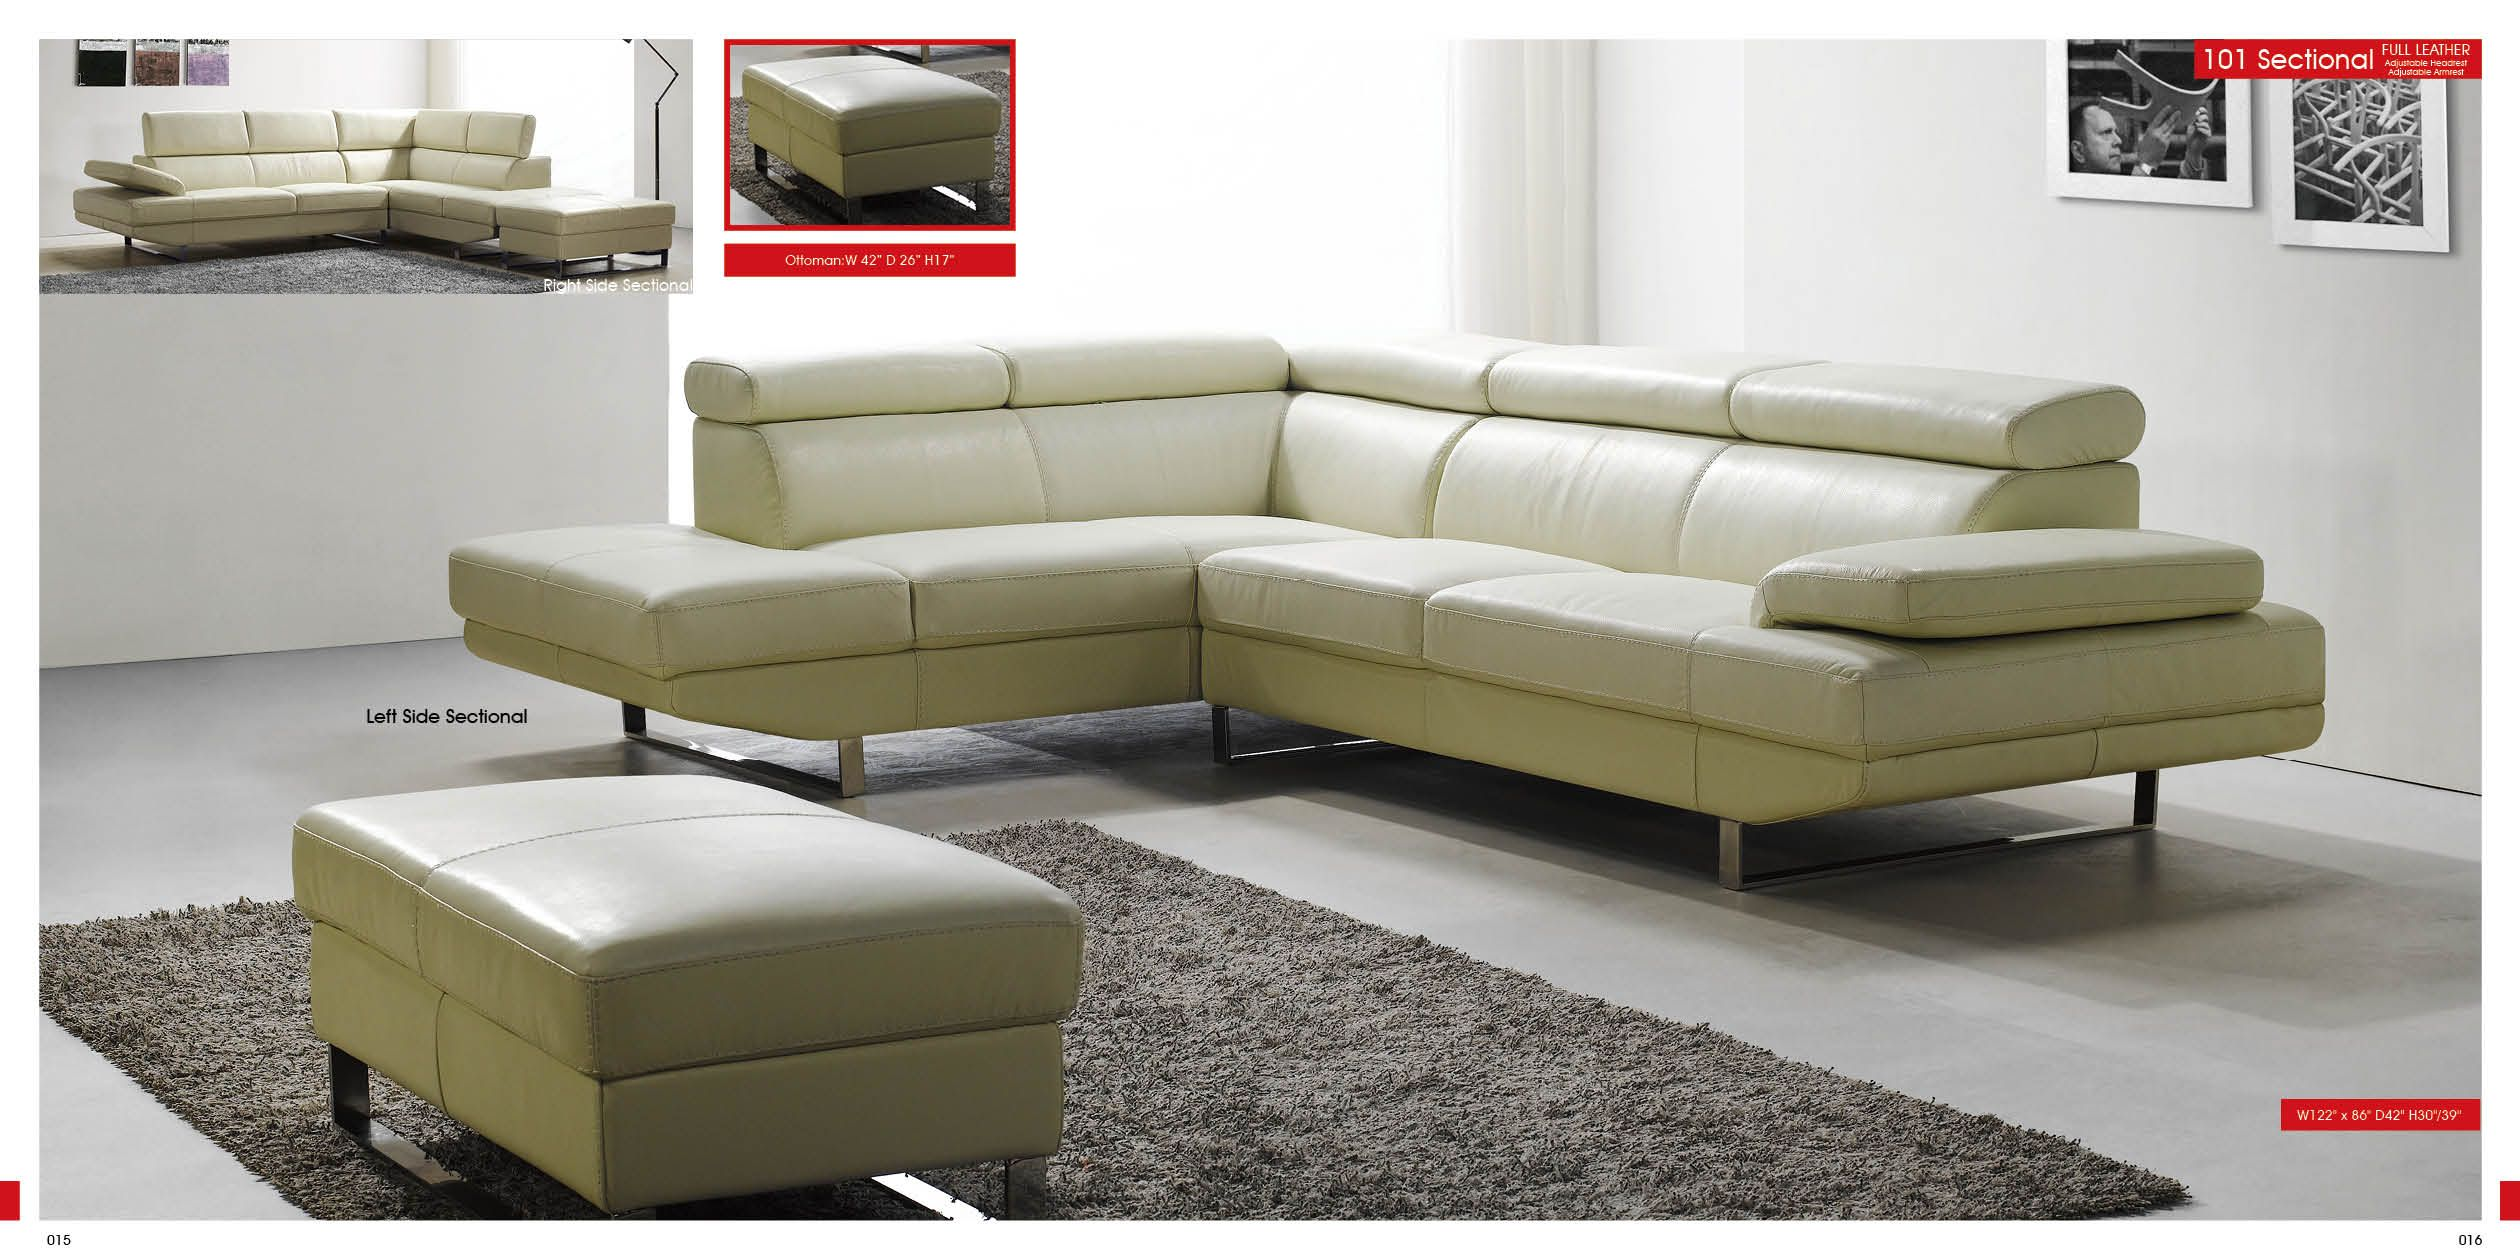 White Sectional Living Room Modern Furniture Italian Leather Living Room Sectional Sofa Set